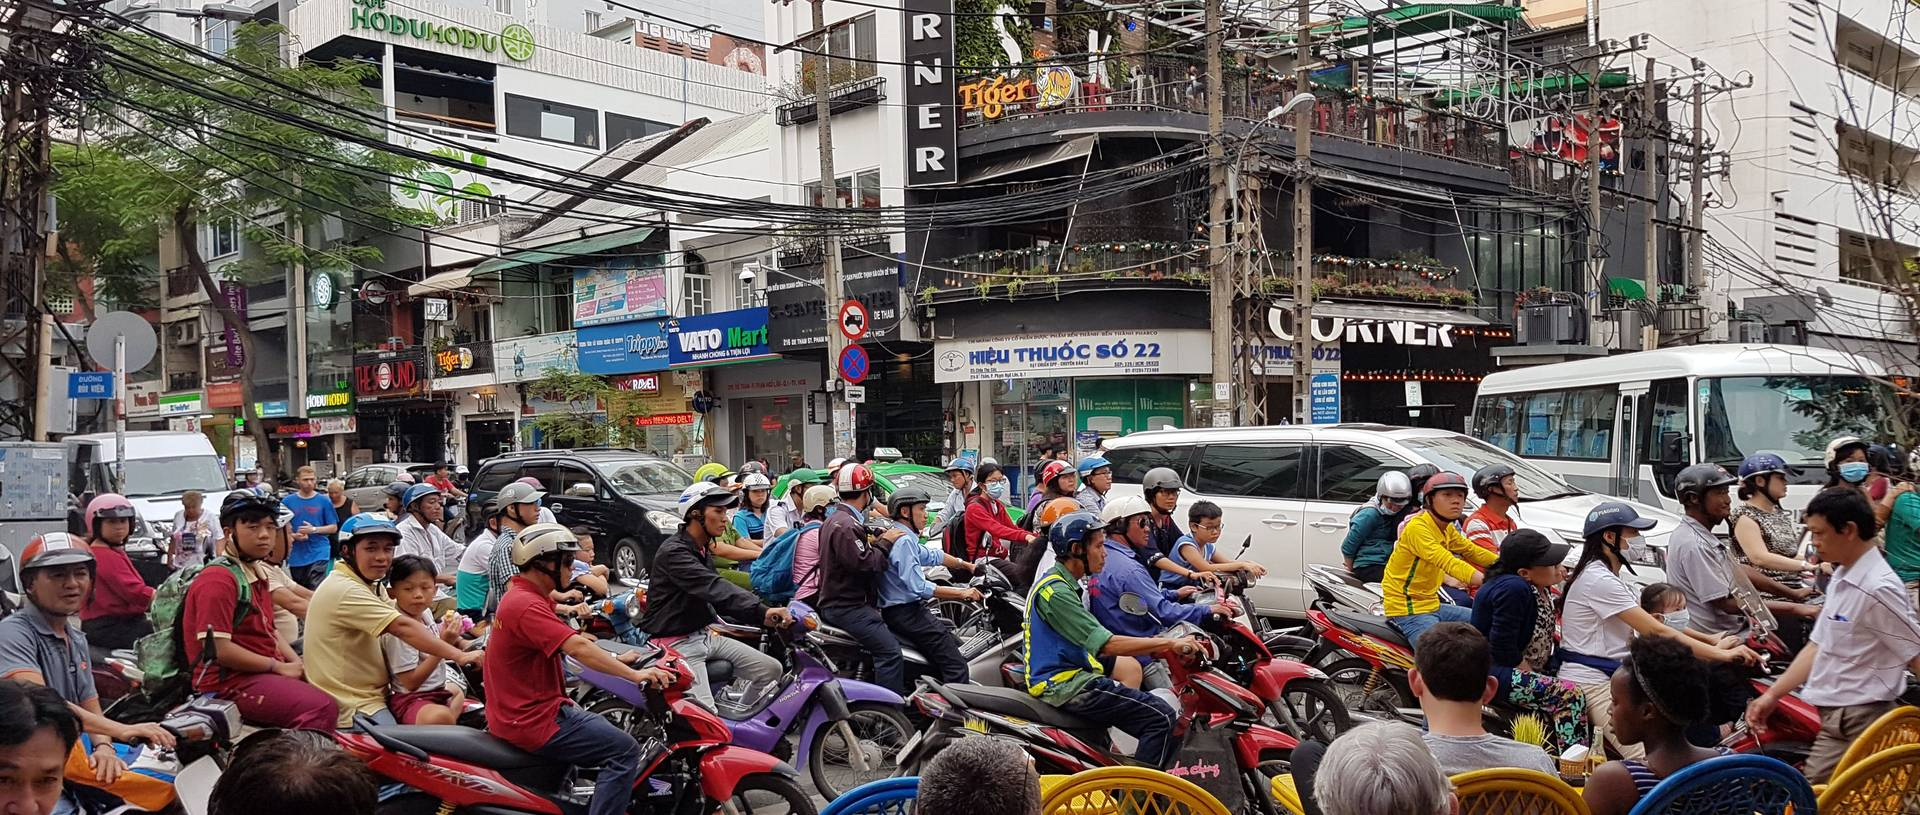 Motorbikes In Ho Chi Minh City